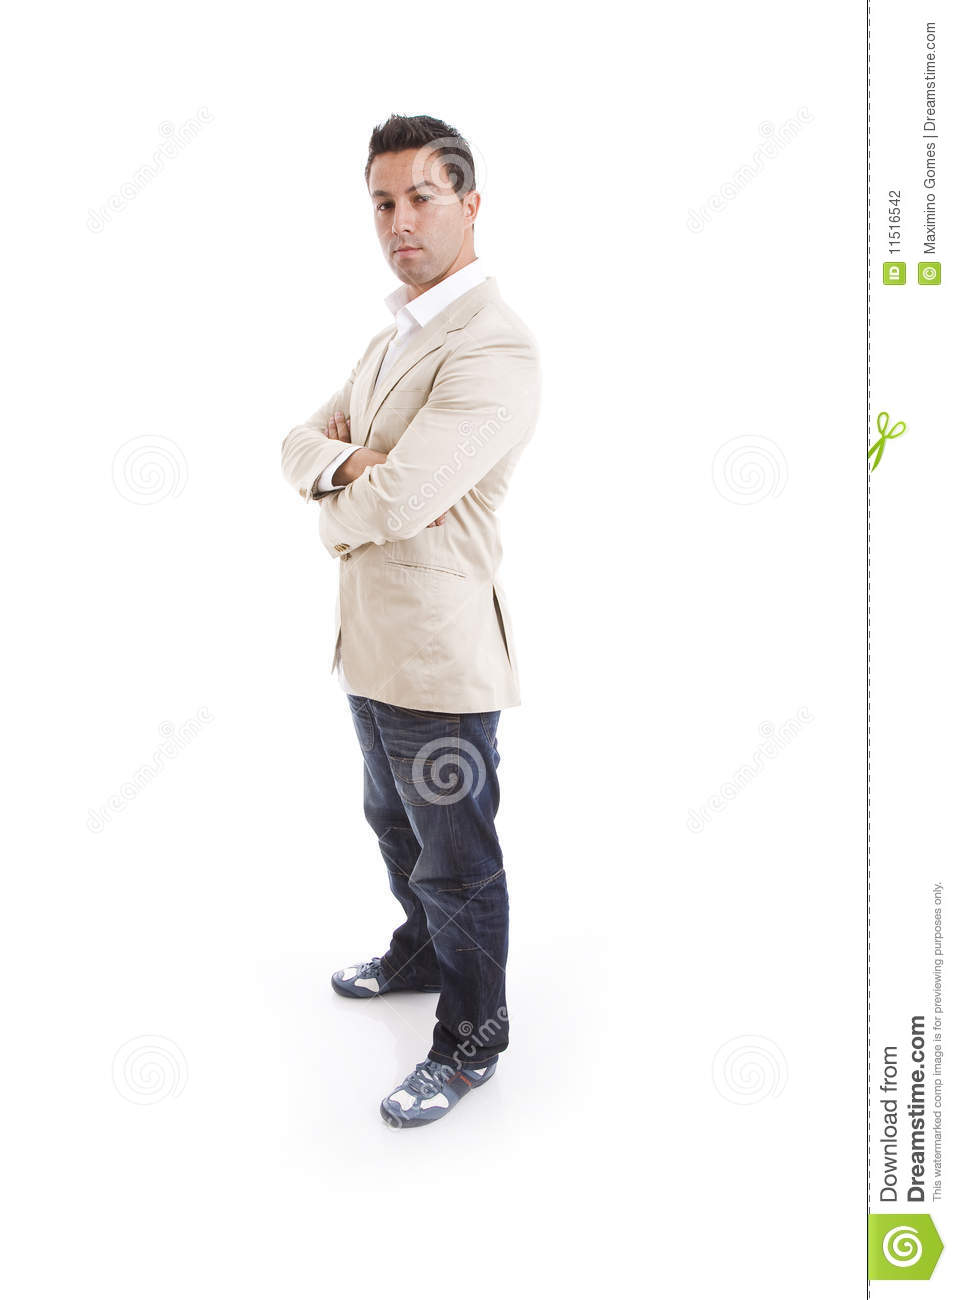 Download Charming man stock photo. Image of adult, executive, confident - 11516542